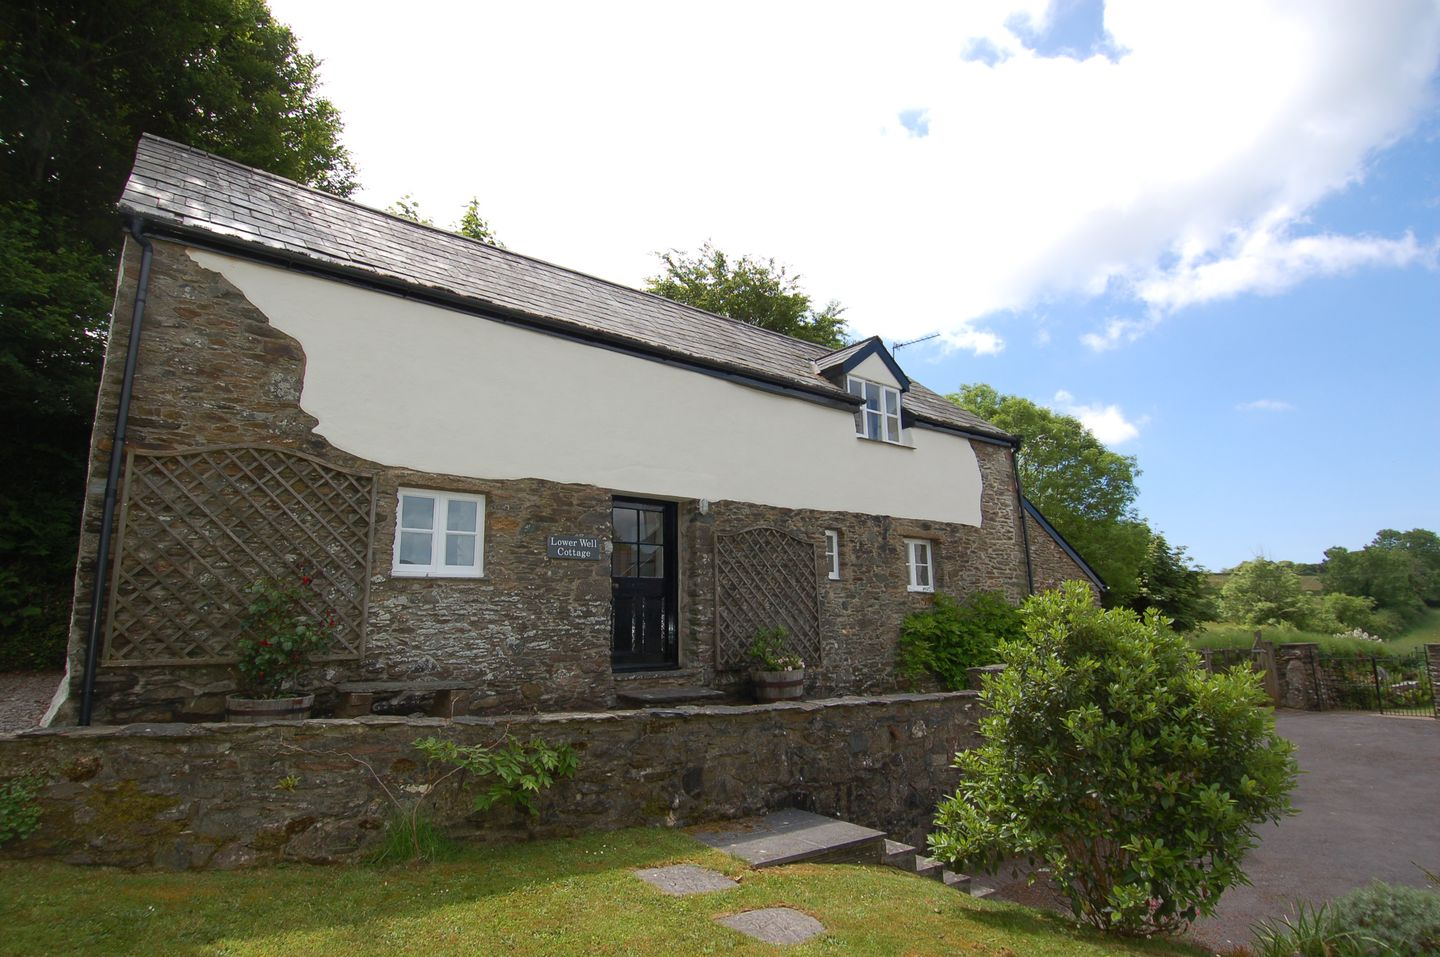 Lower Well Cottage